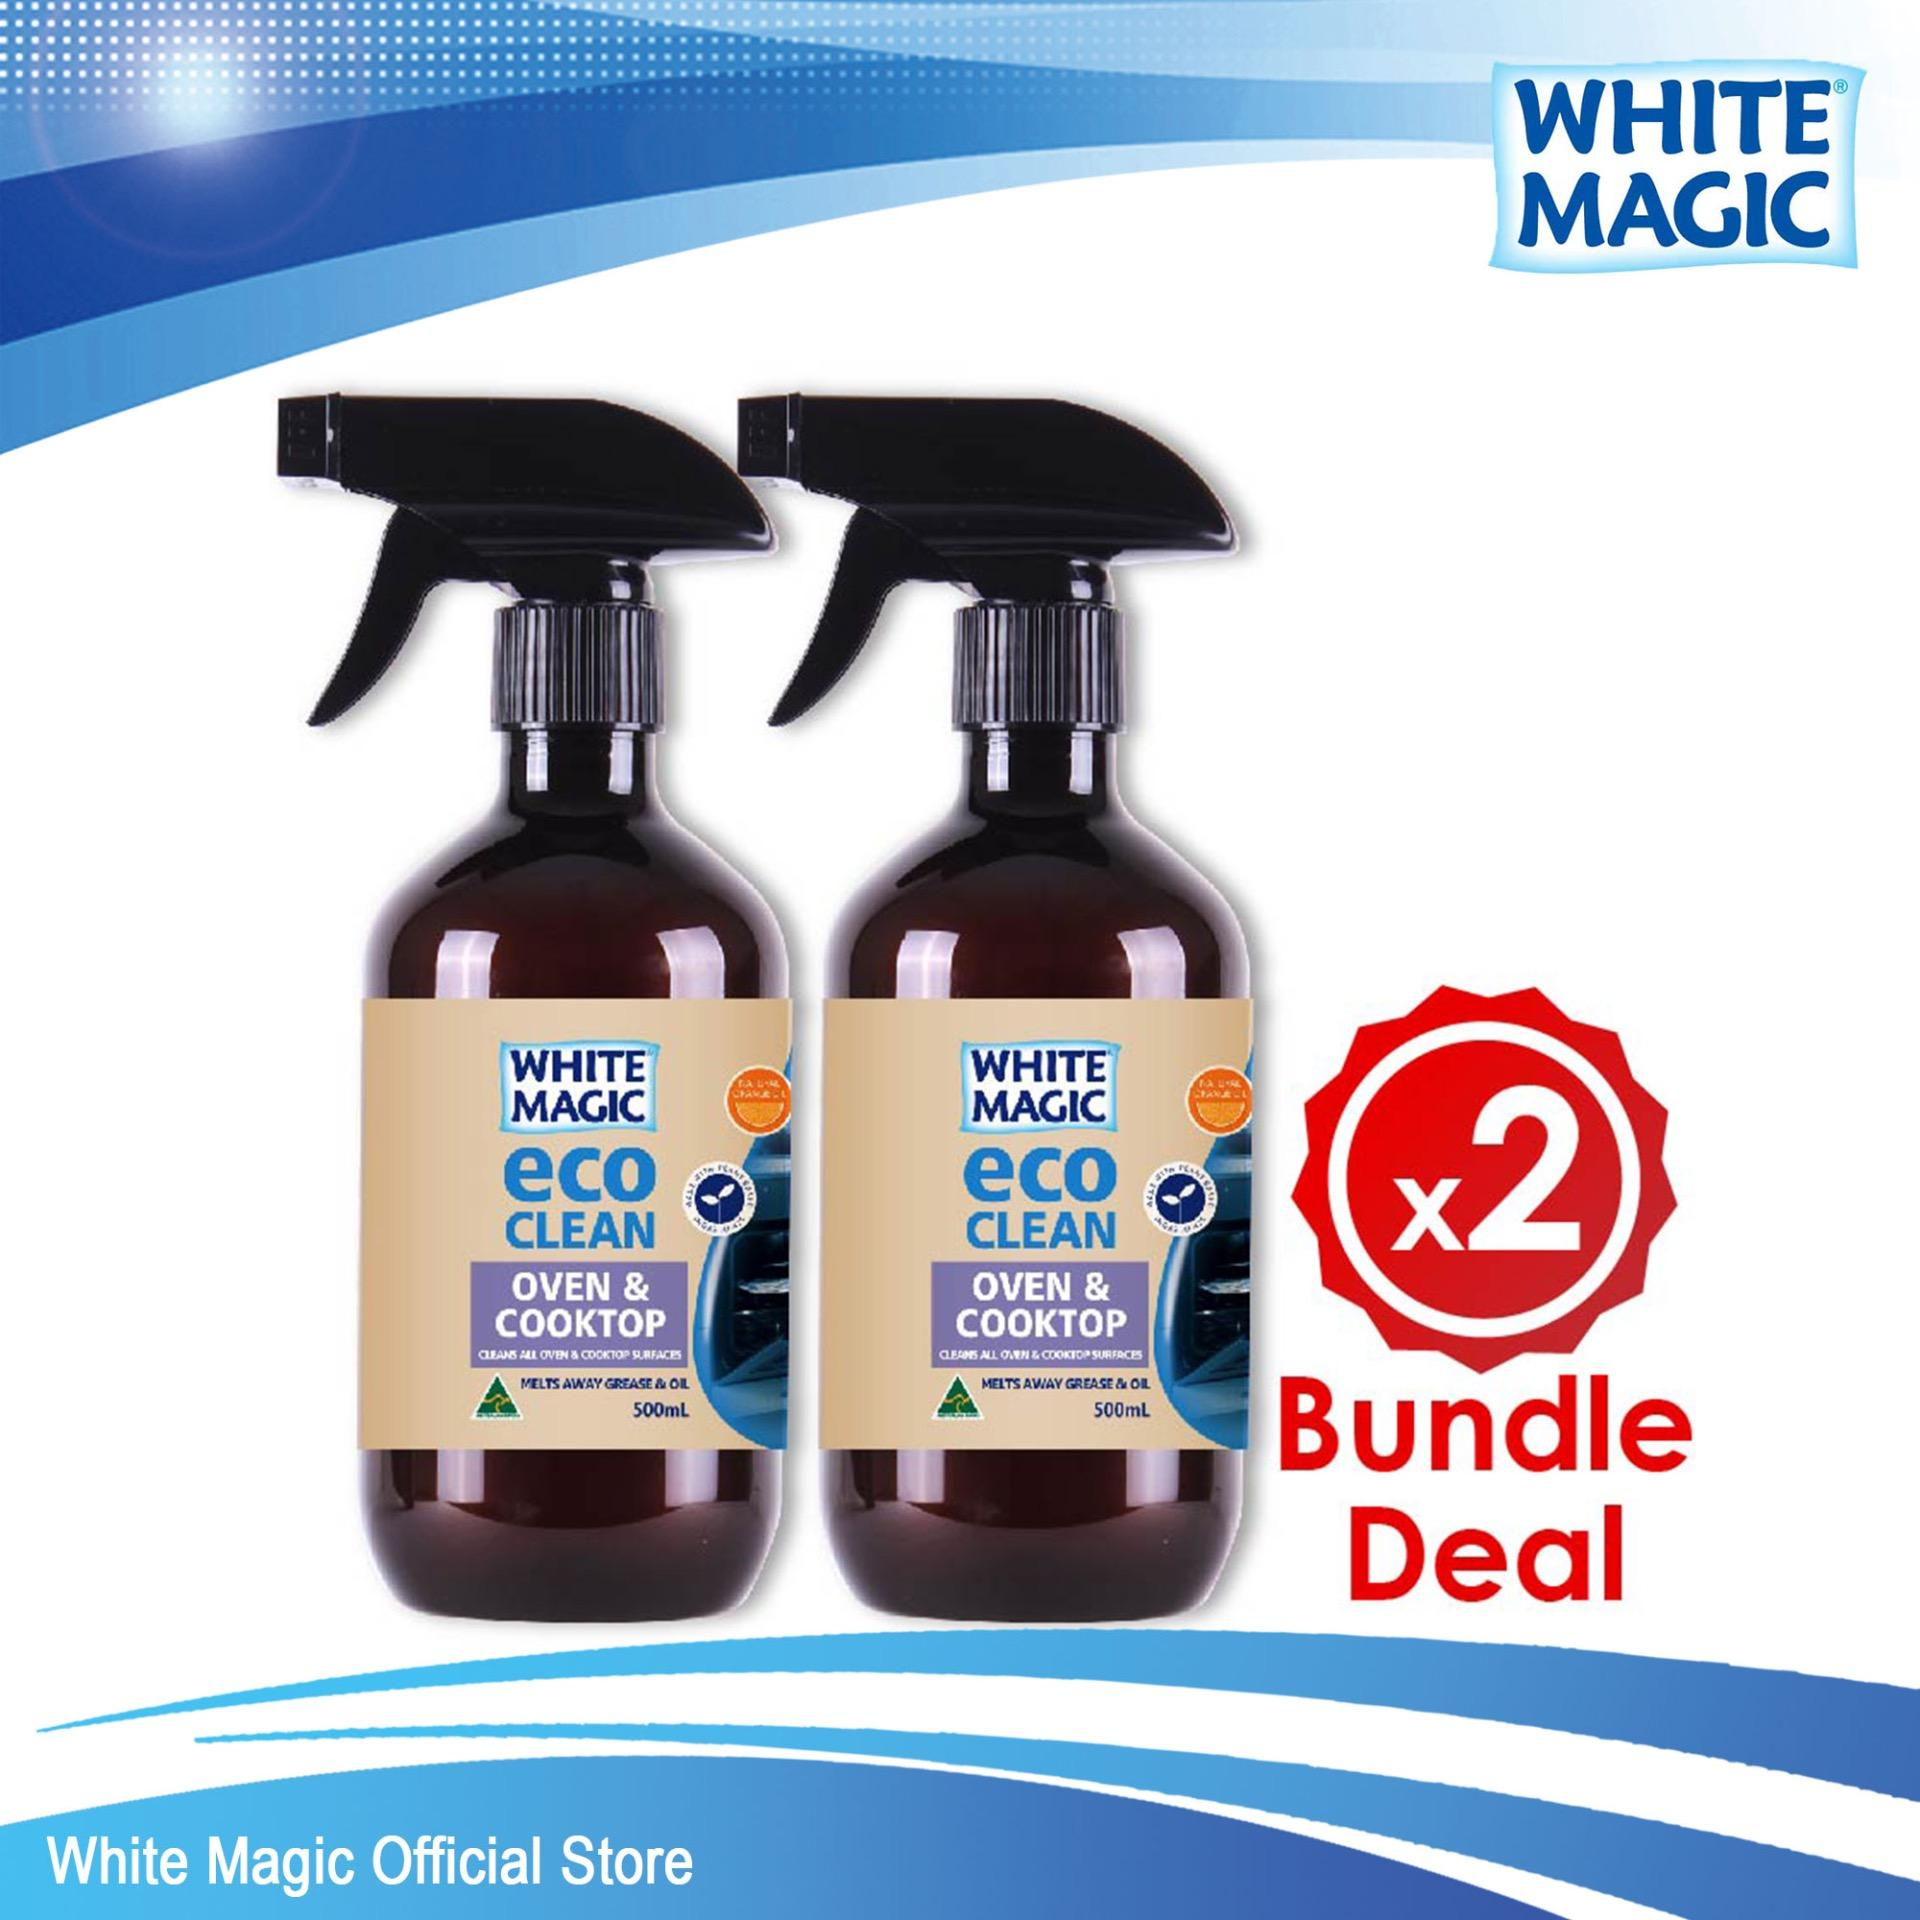 Sale Bundle Deal White Magic Eco Clean Oven Cooktop X 2 White Magic Online